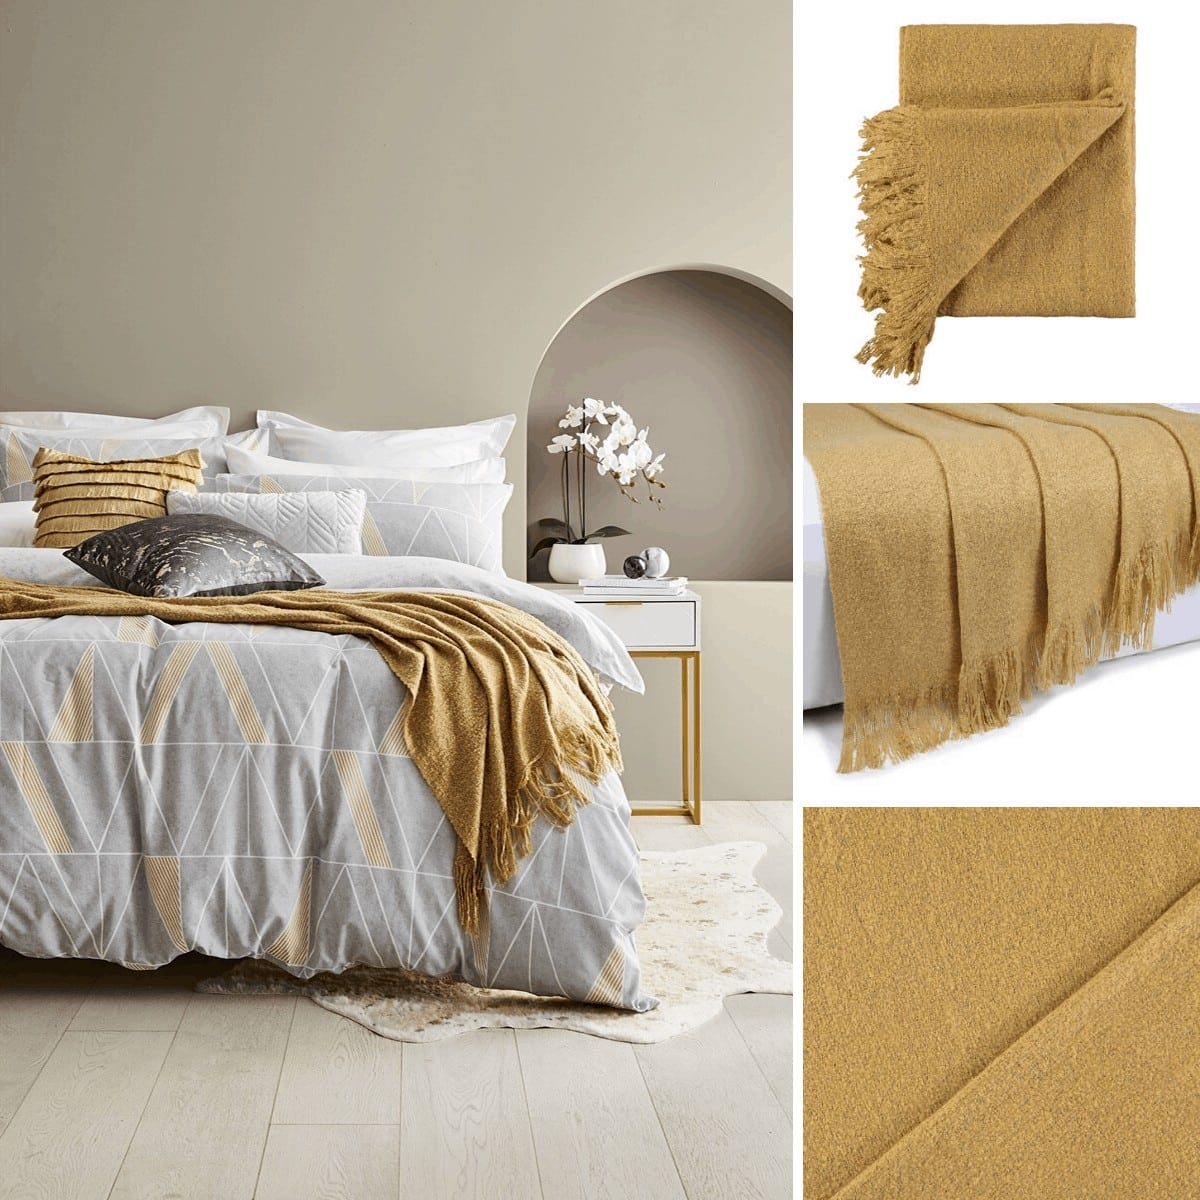 kmart lyla throw affordable throw blankets mustard bedding